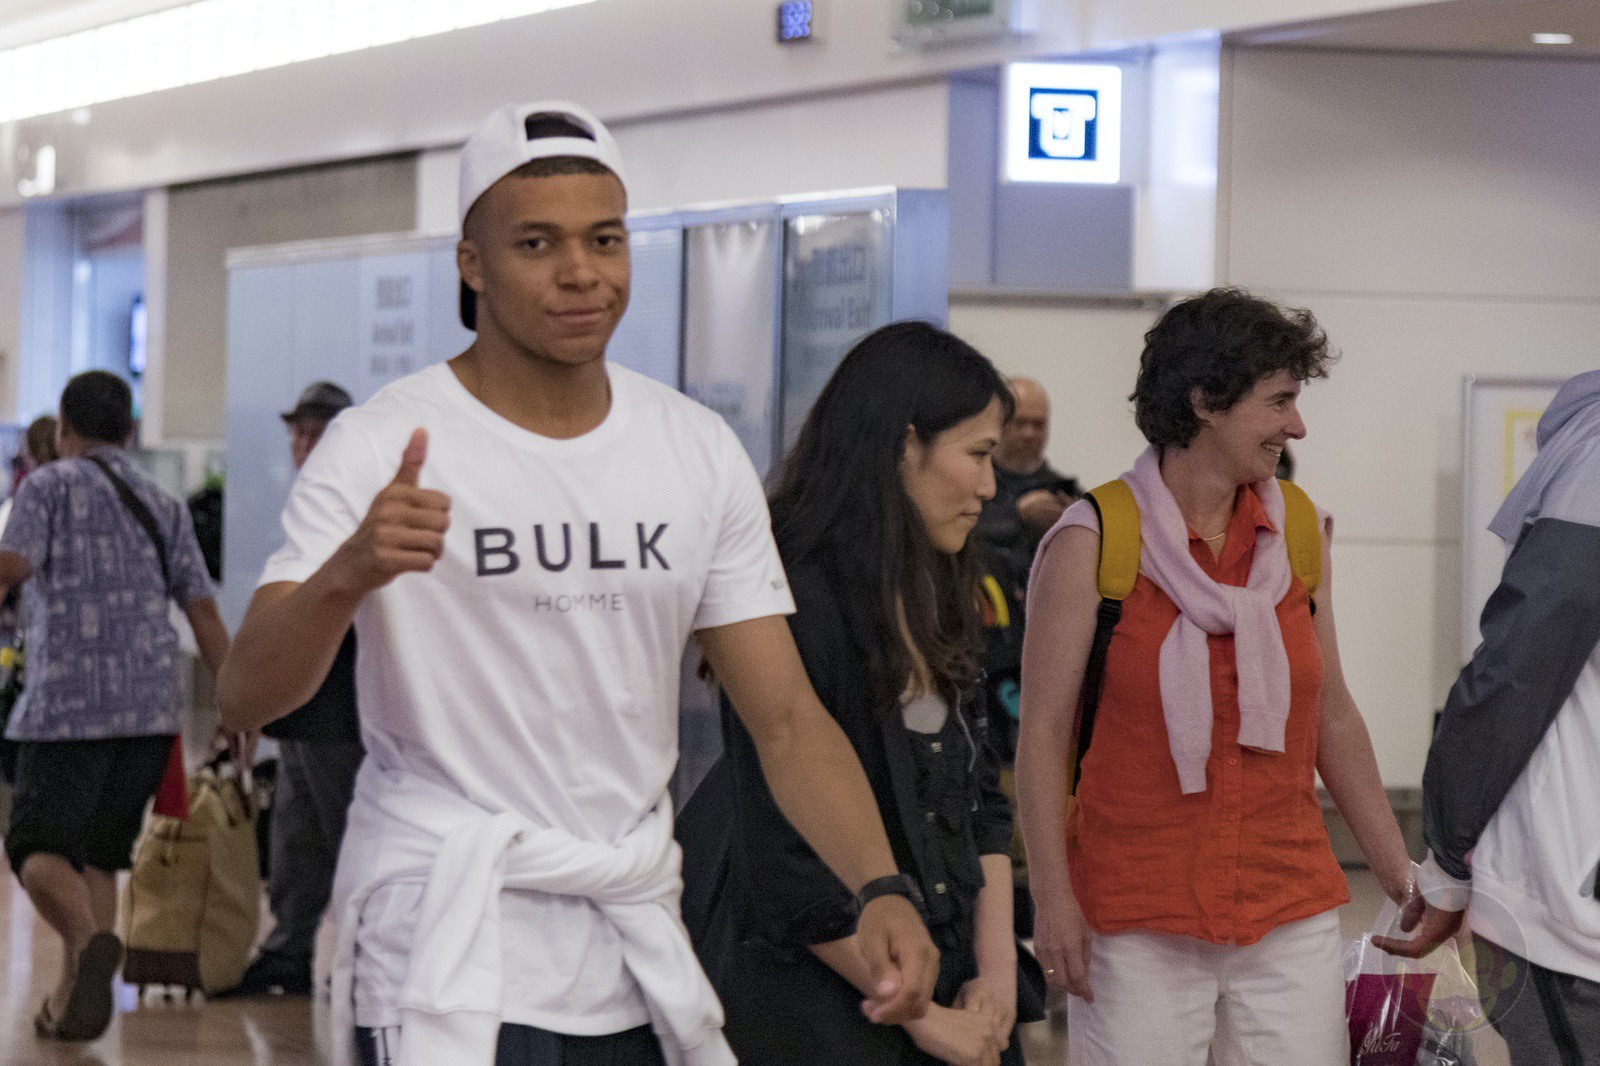 Kylian Mbappé Comes to Japan 04